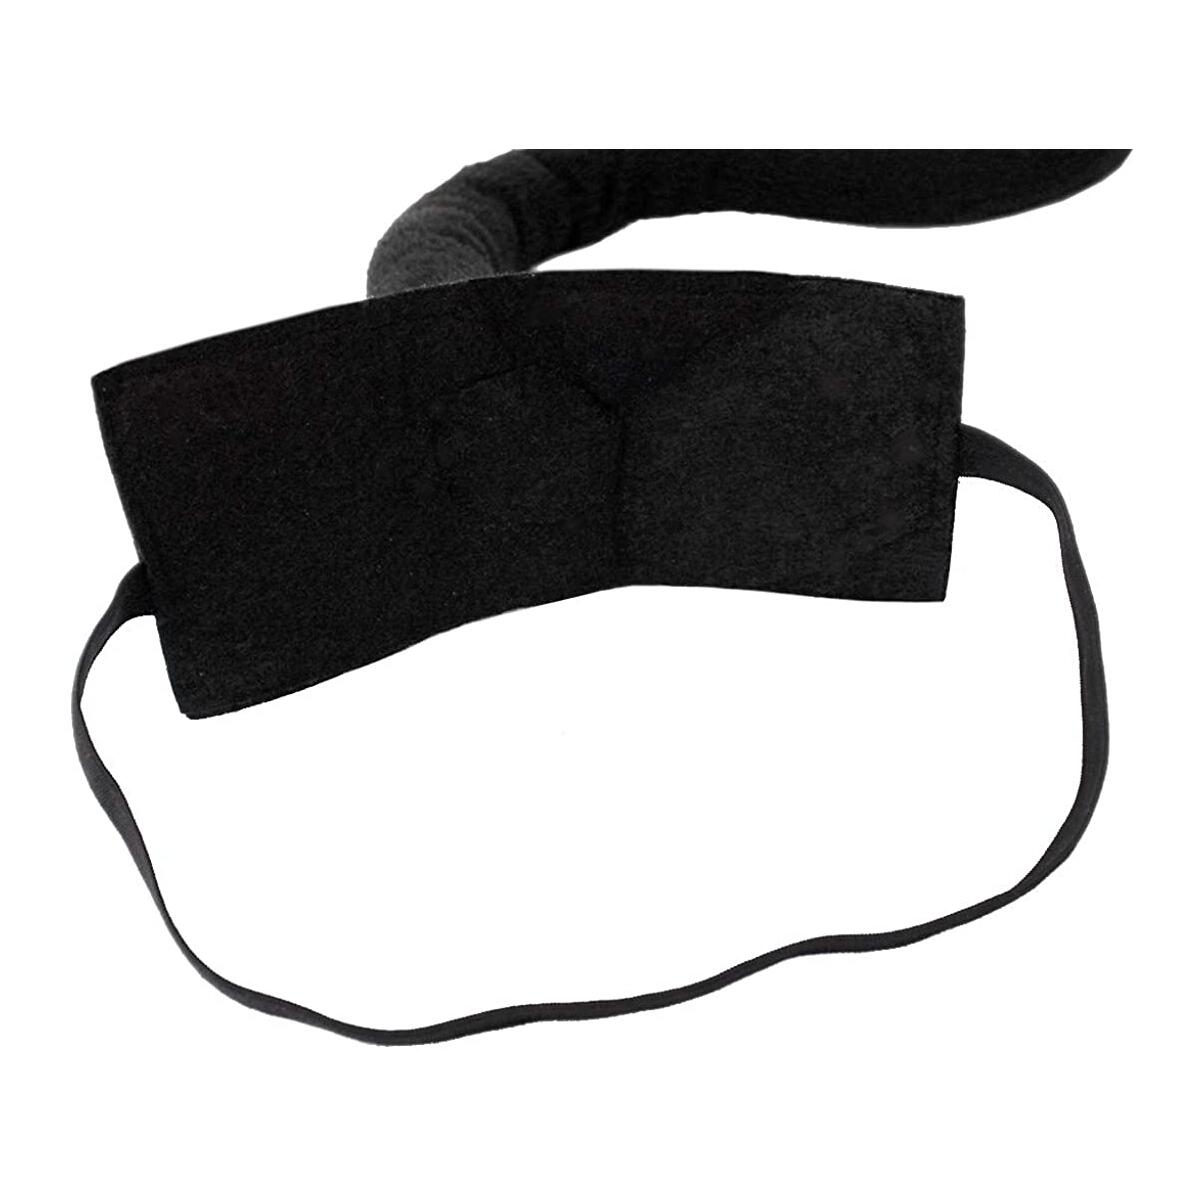 Cat Ears and Tail Set Black Cat Ear Clips and Long Tail Cosplay Costume Set Animal Ear Clips White & Black Hair Clip for Women/Girls/Kids Halloween, Anime Neko Accessories